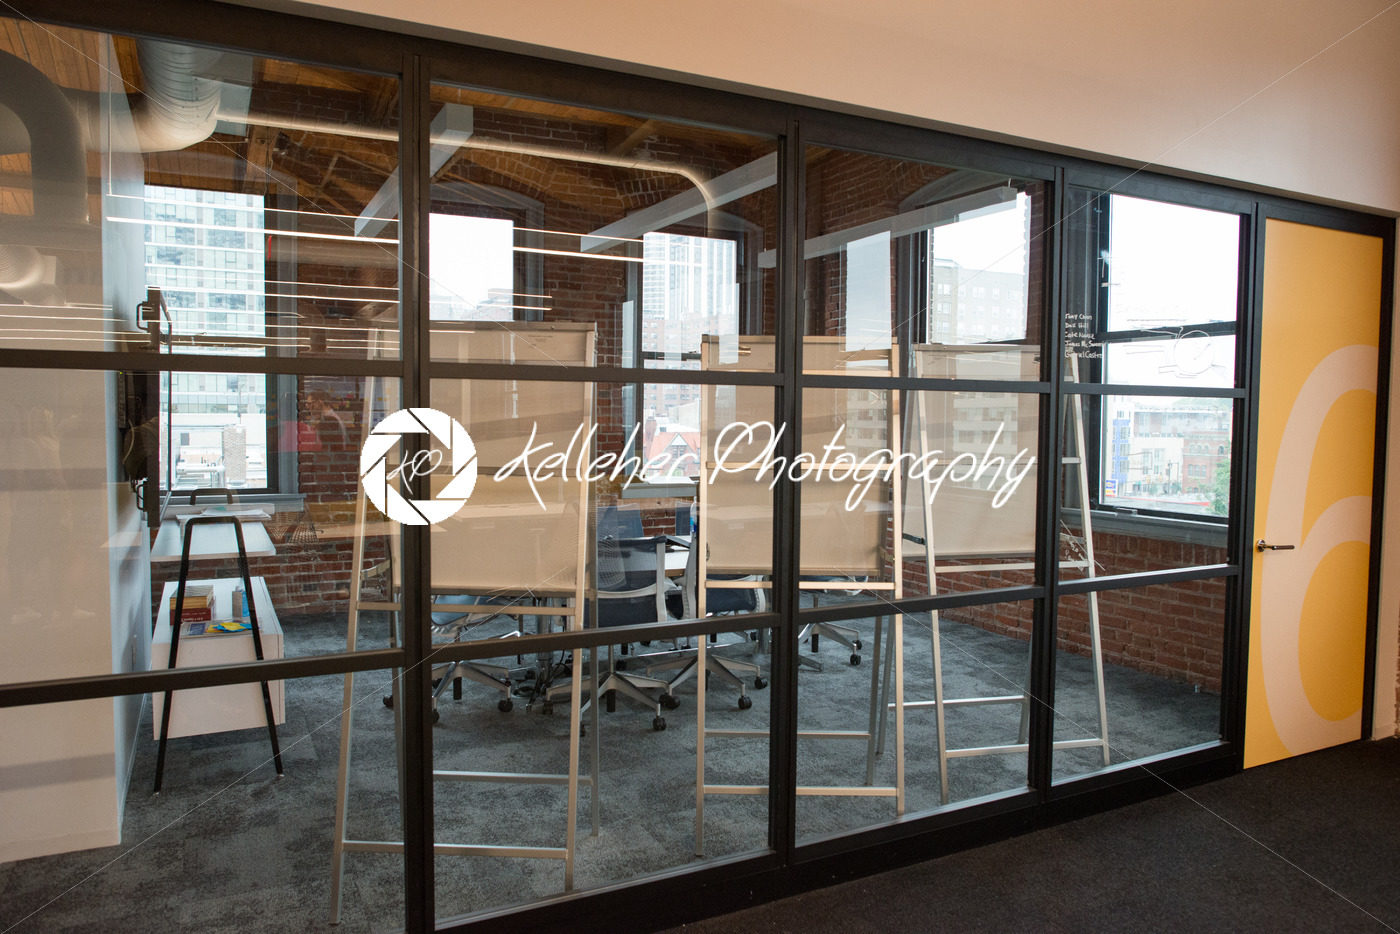 natural light office. Trendy Modern Open Concept Loft Office Space With Big Windows, Natural Light And A Layout To Encourage Collaboration, Creativity Innovation C